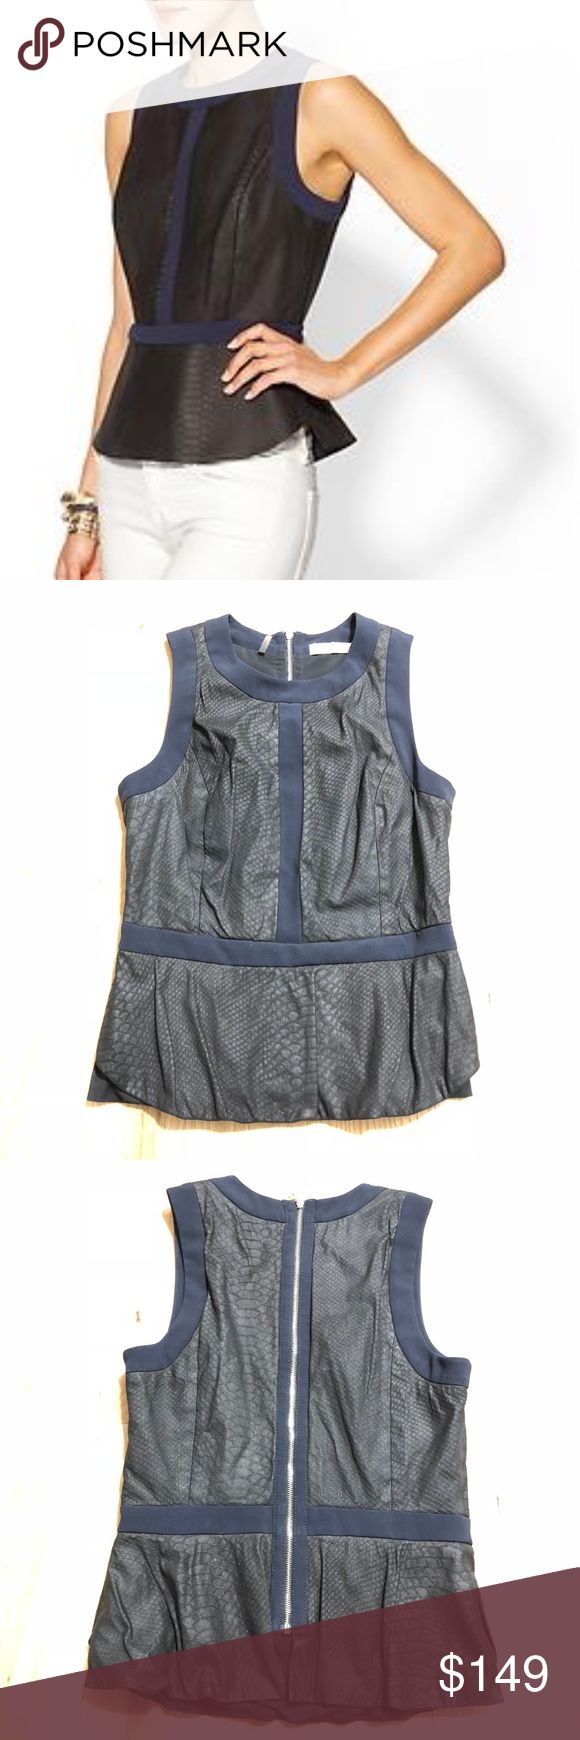 """Rebecca Taylor Leather Snakeskin Peplum Top Rebecca Taylor Pleated Leather Peplum Top. Black leather with snakeskin print all over. Navy blue contract. Exposed silver zipper down length of back. Sleeveless. Approx 16"""" across bust, 14"""" across waist, 22"""" long. 100% leather. Navy blue is 92% polyester, 8% spandex. Fully lined. First pic is stock. No signs of wear. EUC.  No trades. If I want something in your closet badly enough, I'll buy it 😍 Reasonable offers always welcome! Rebecca Taylor…"""